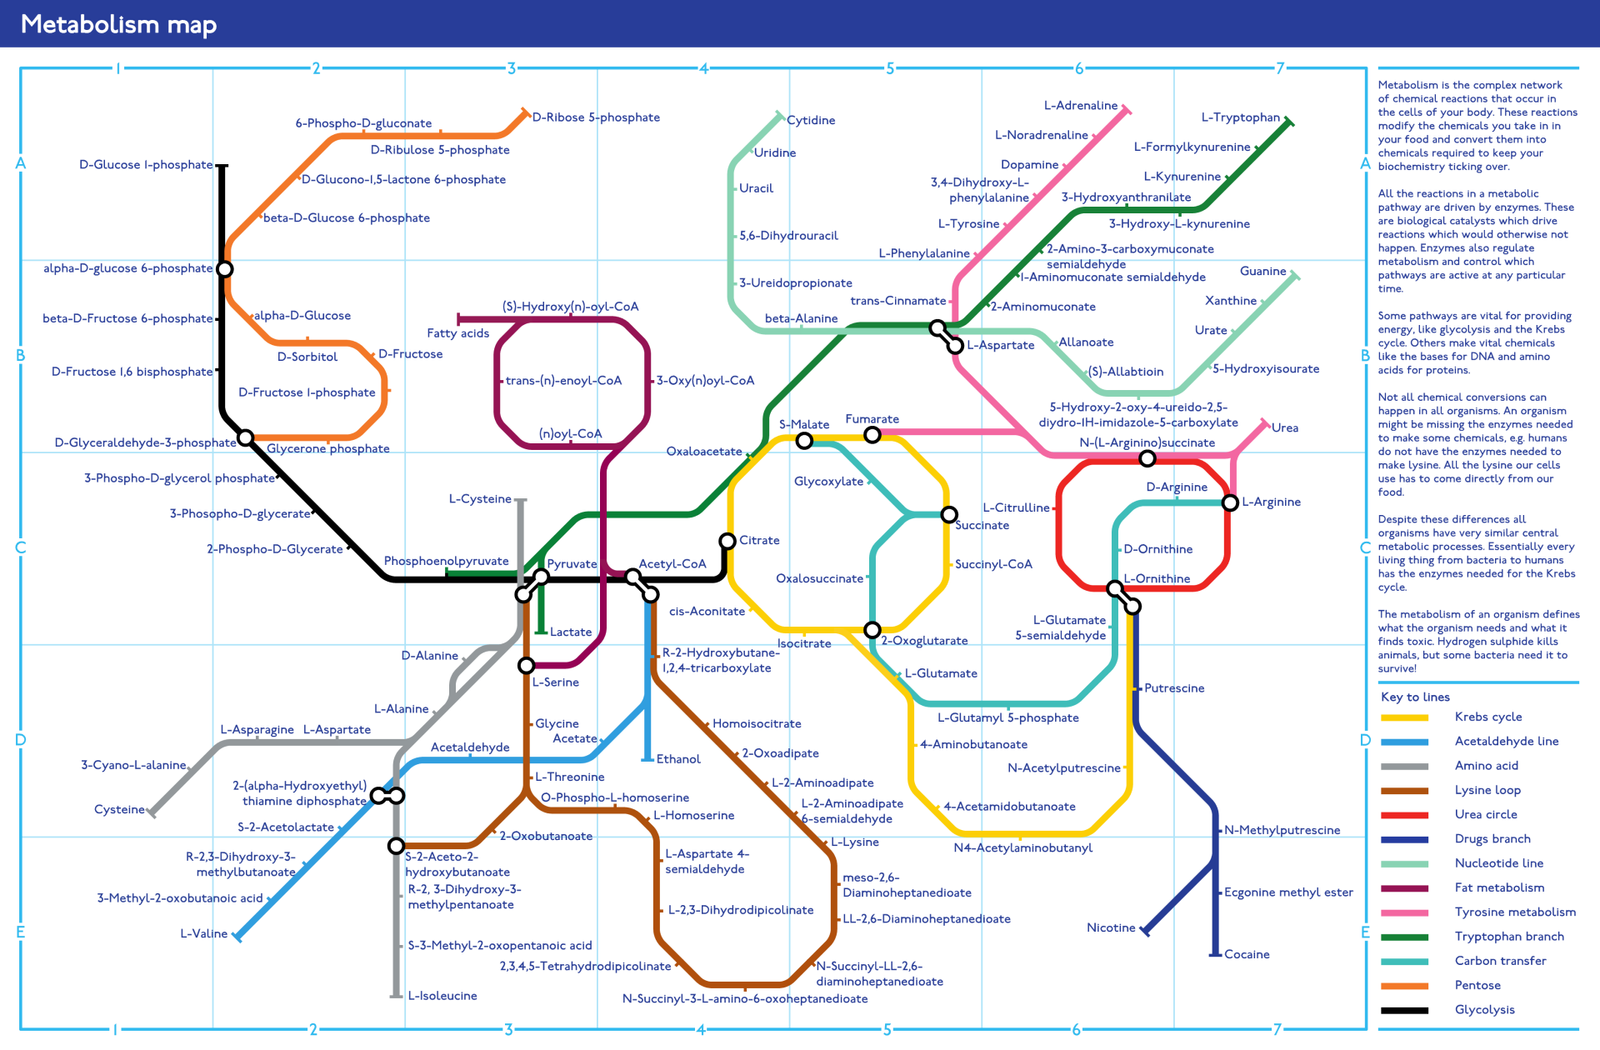 Metabolism Tube Map by zephyris on DeviantArt